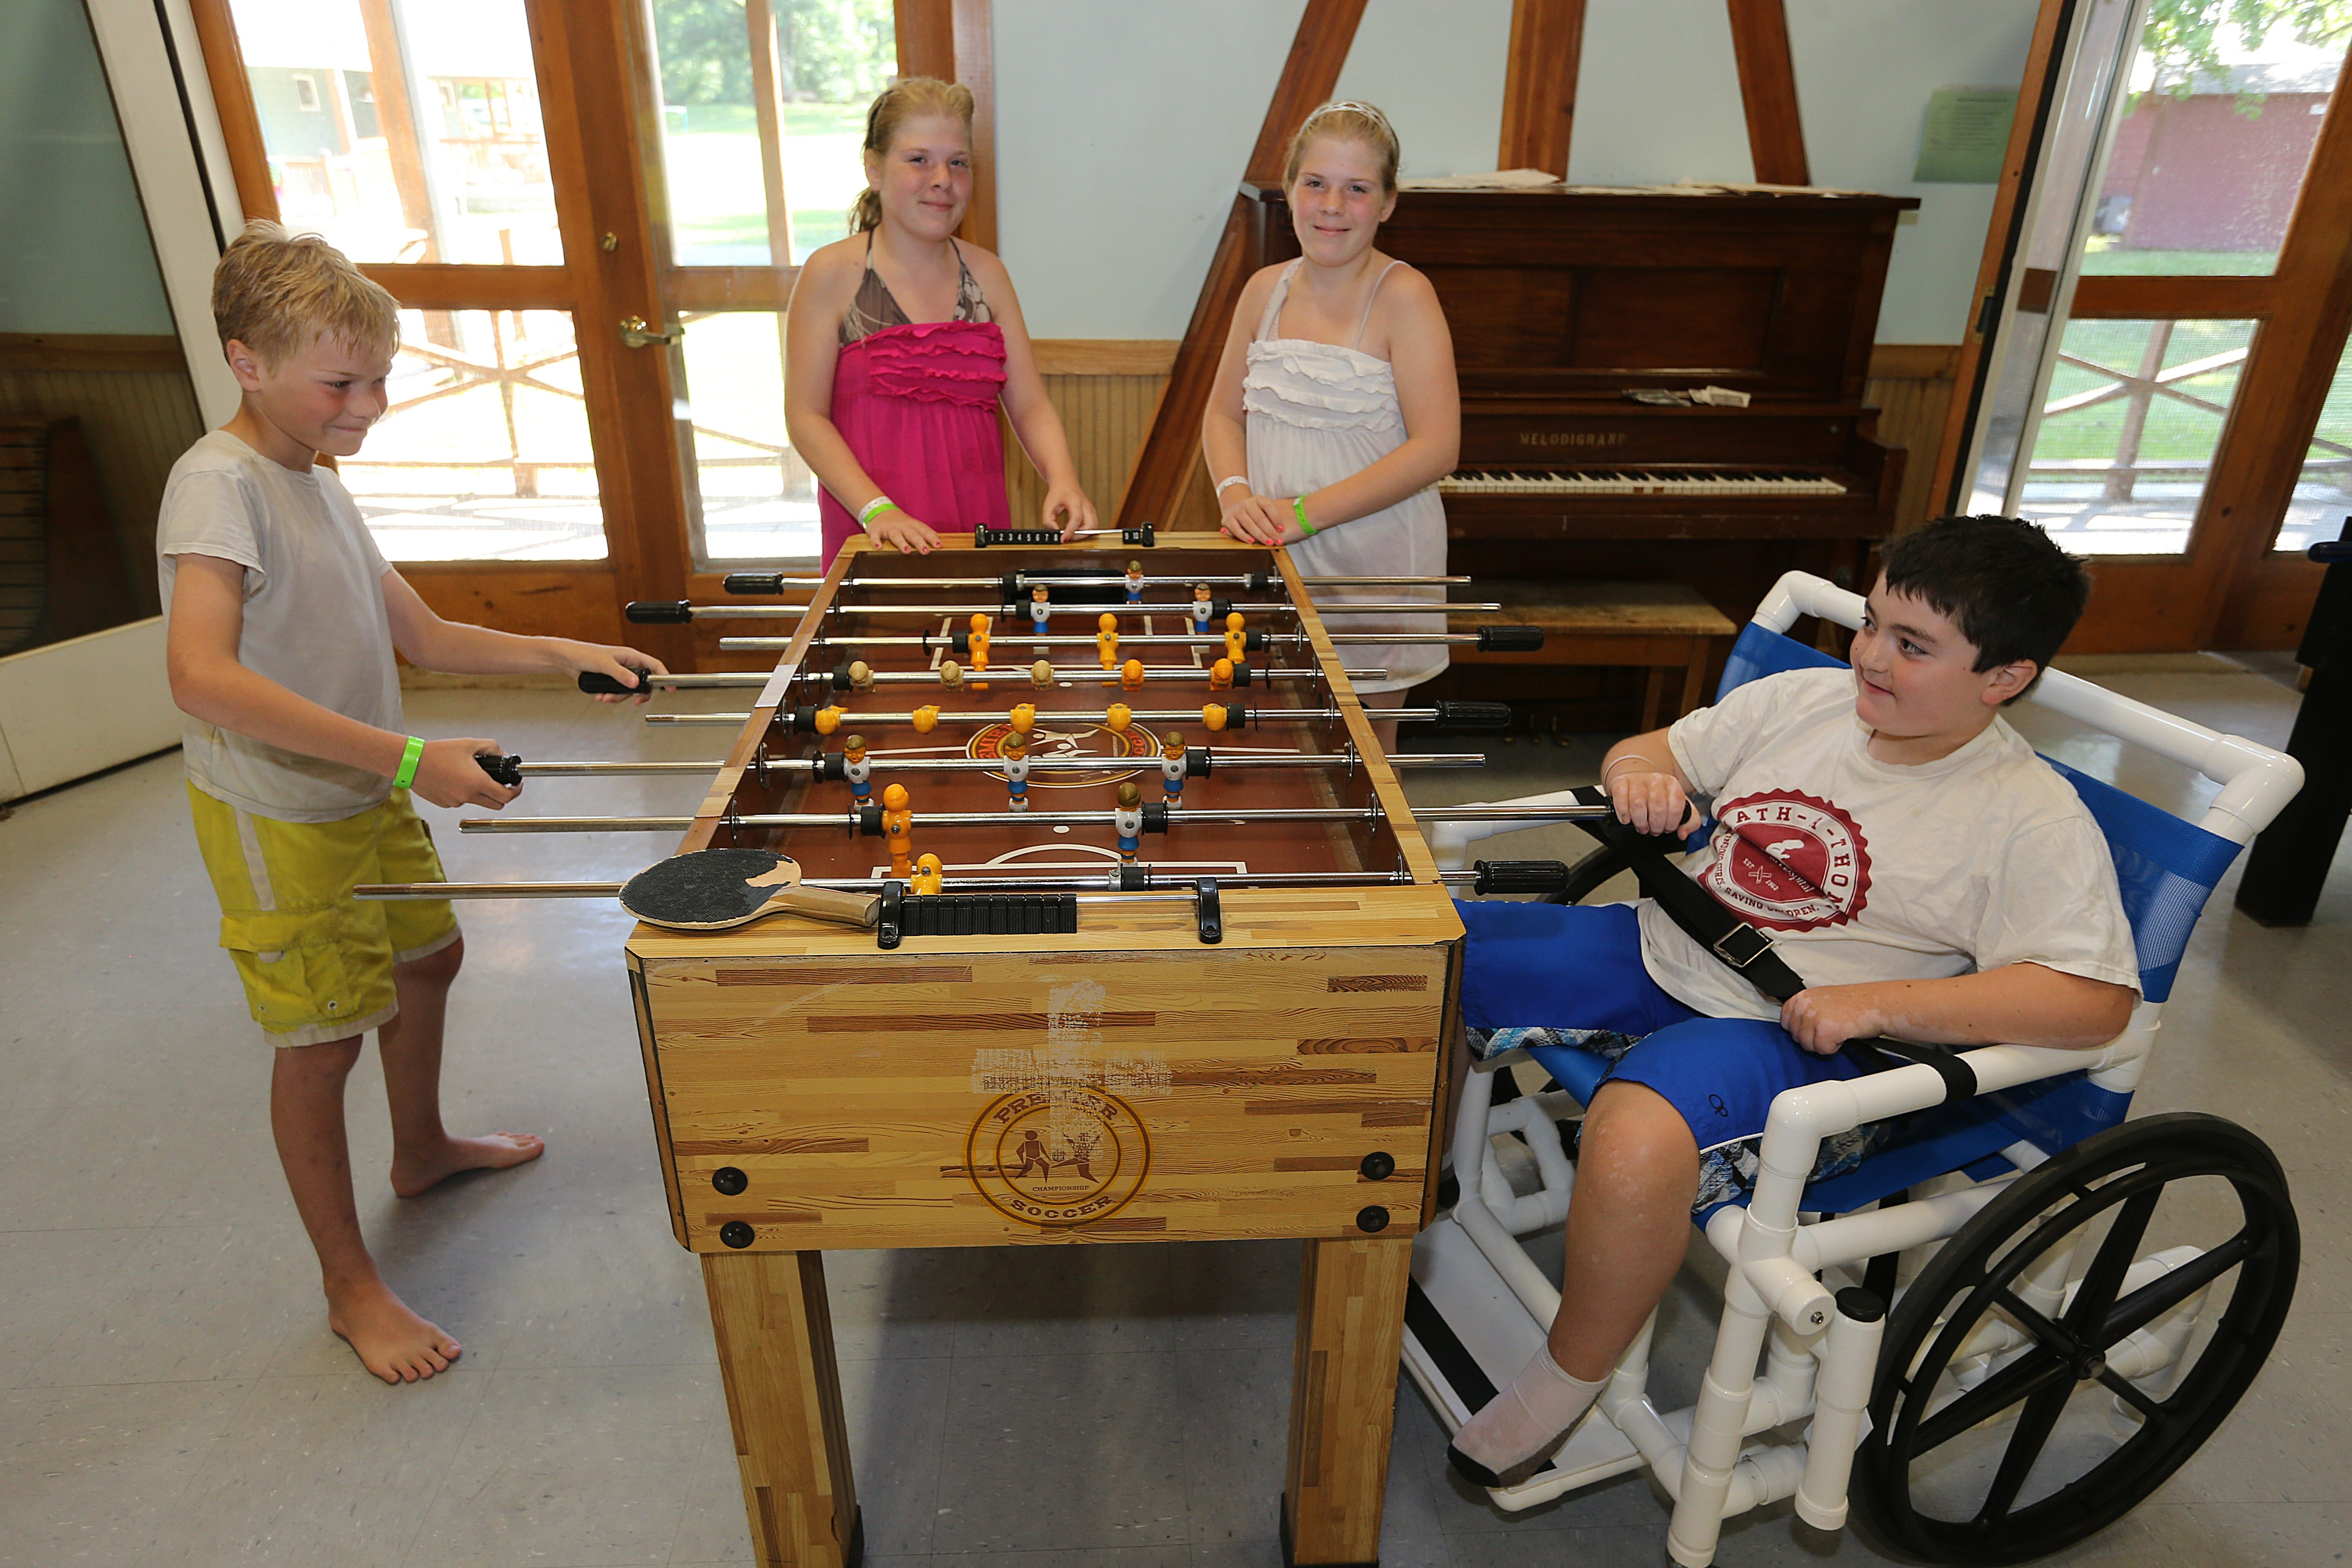 From left: Siblings Cody, 9, Faith and Hope Boone, both 13, of Niagara Falls, and Nathaniel Gavin, 9, of Dunkirk, at the foosball table at Cradle Beach Camp in Angola.